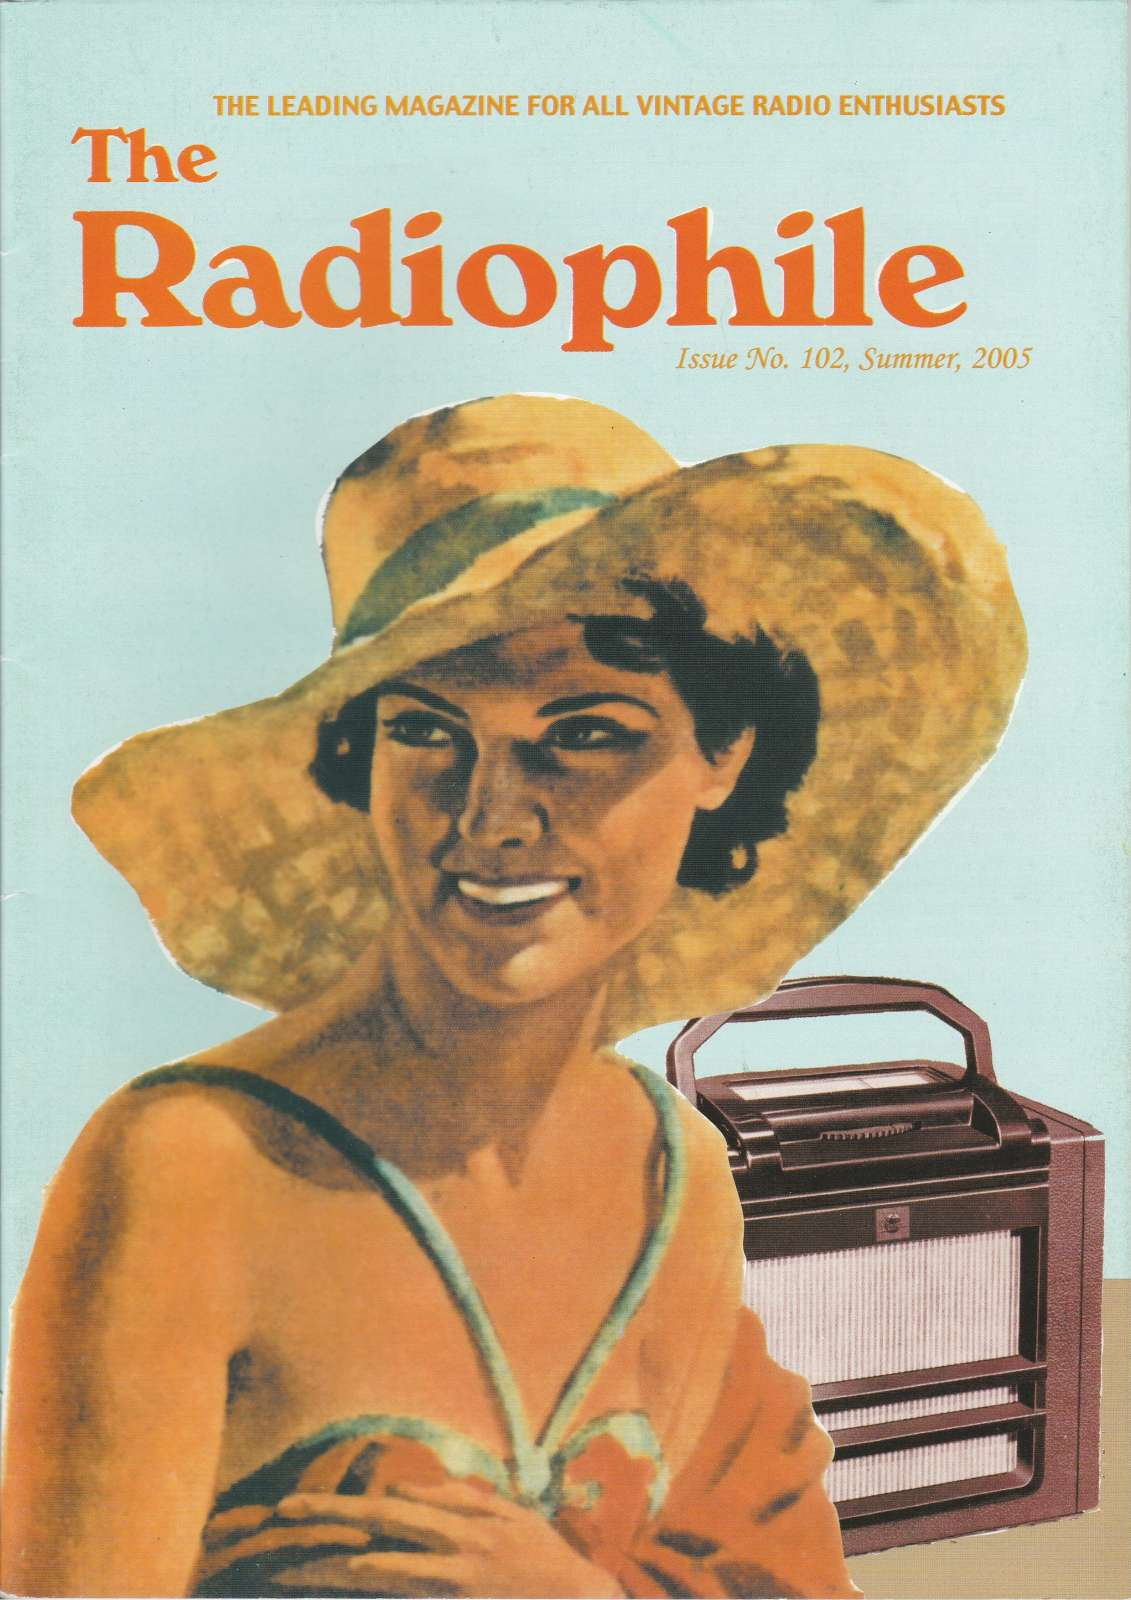 Radiophile Issue 102